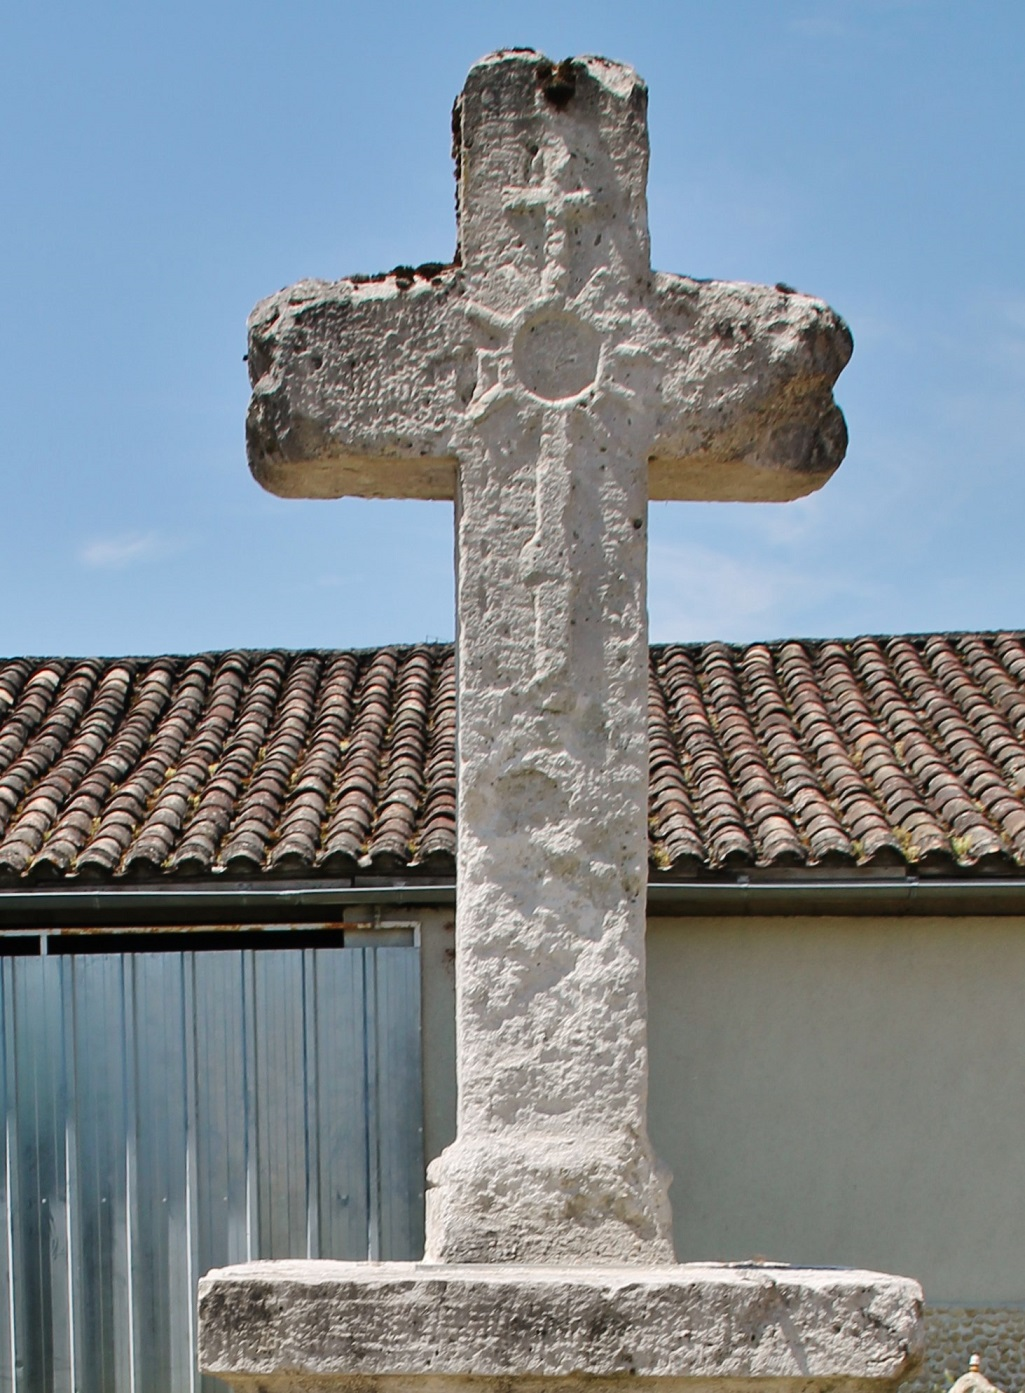 Monumental cross, French Heritage monument to Perville.